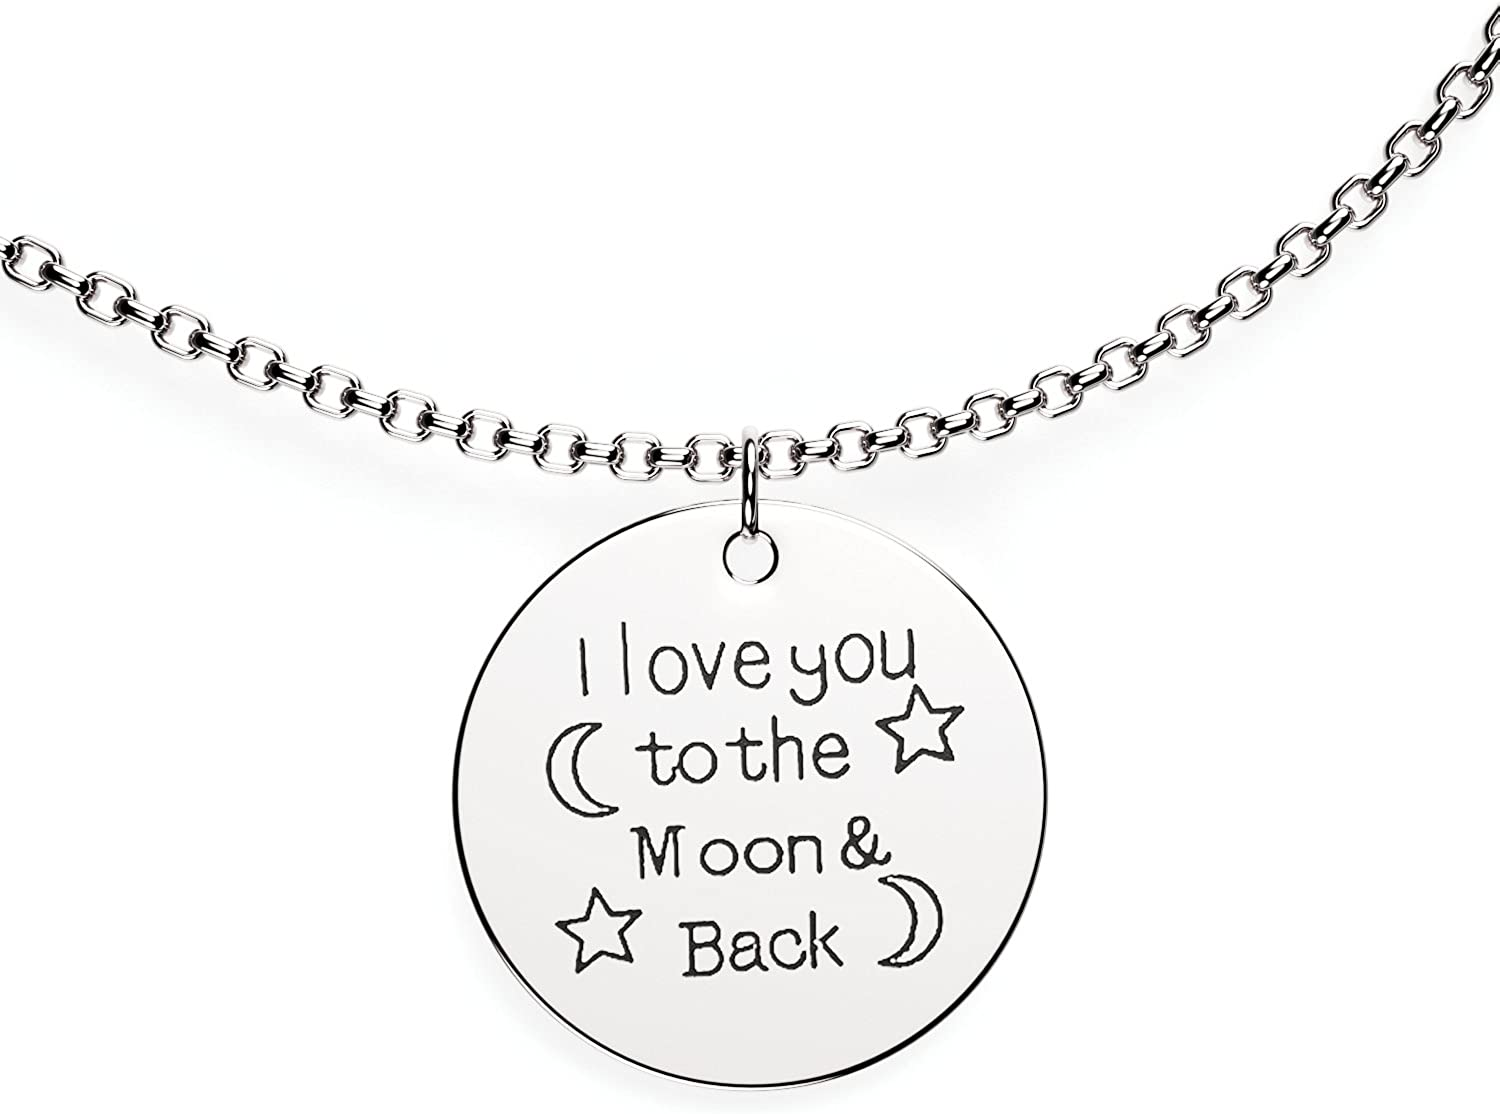 I Love You to The Moon and Back Love Pendant Necklace - Charm Necklace for Women